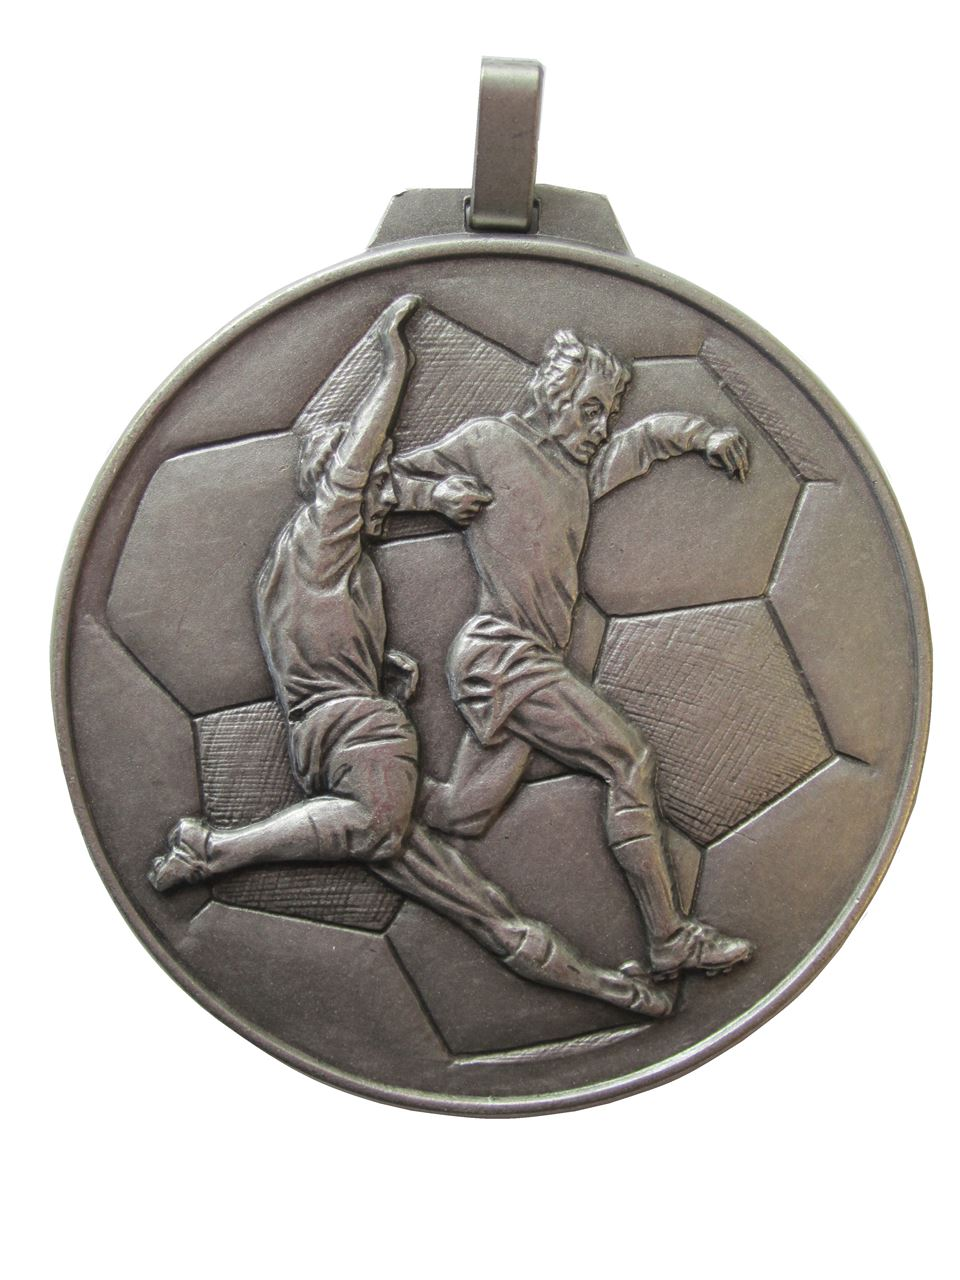 Silver Economy Football Medal (size: 70mm) - 176E